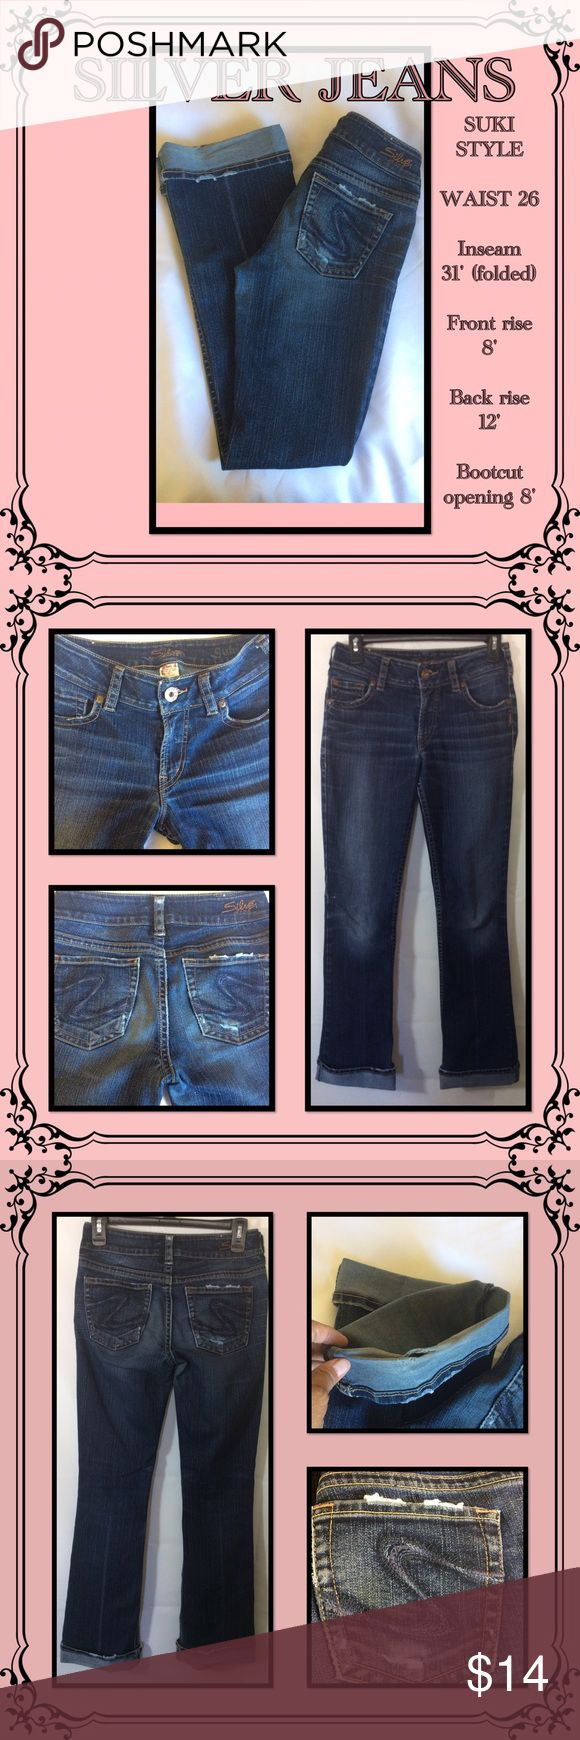 """Silver Suky Style Jeans Pre loved jeans// yellow/copper stitching// dark blue, black and navy stitching on the pockets """"S"""" // distressed style // the only rip is in the folded hem, please see picture // zip fly// Silver Jeans Jeans Boot Cut"""